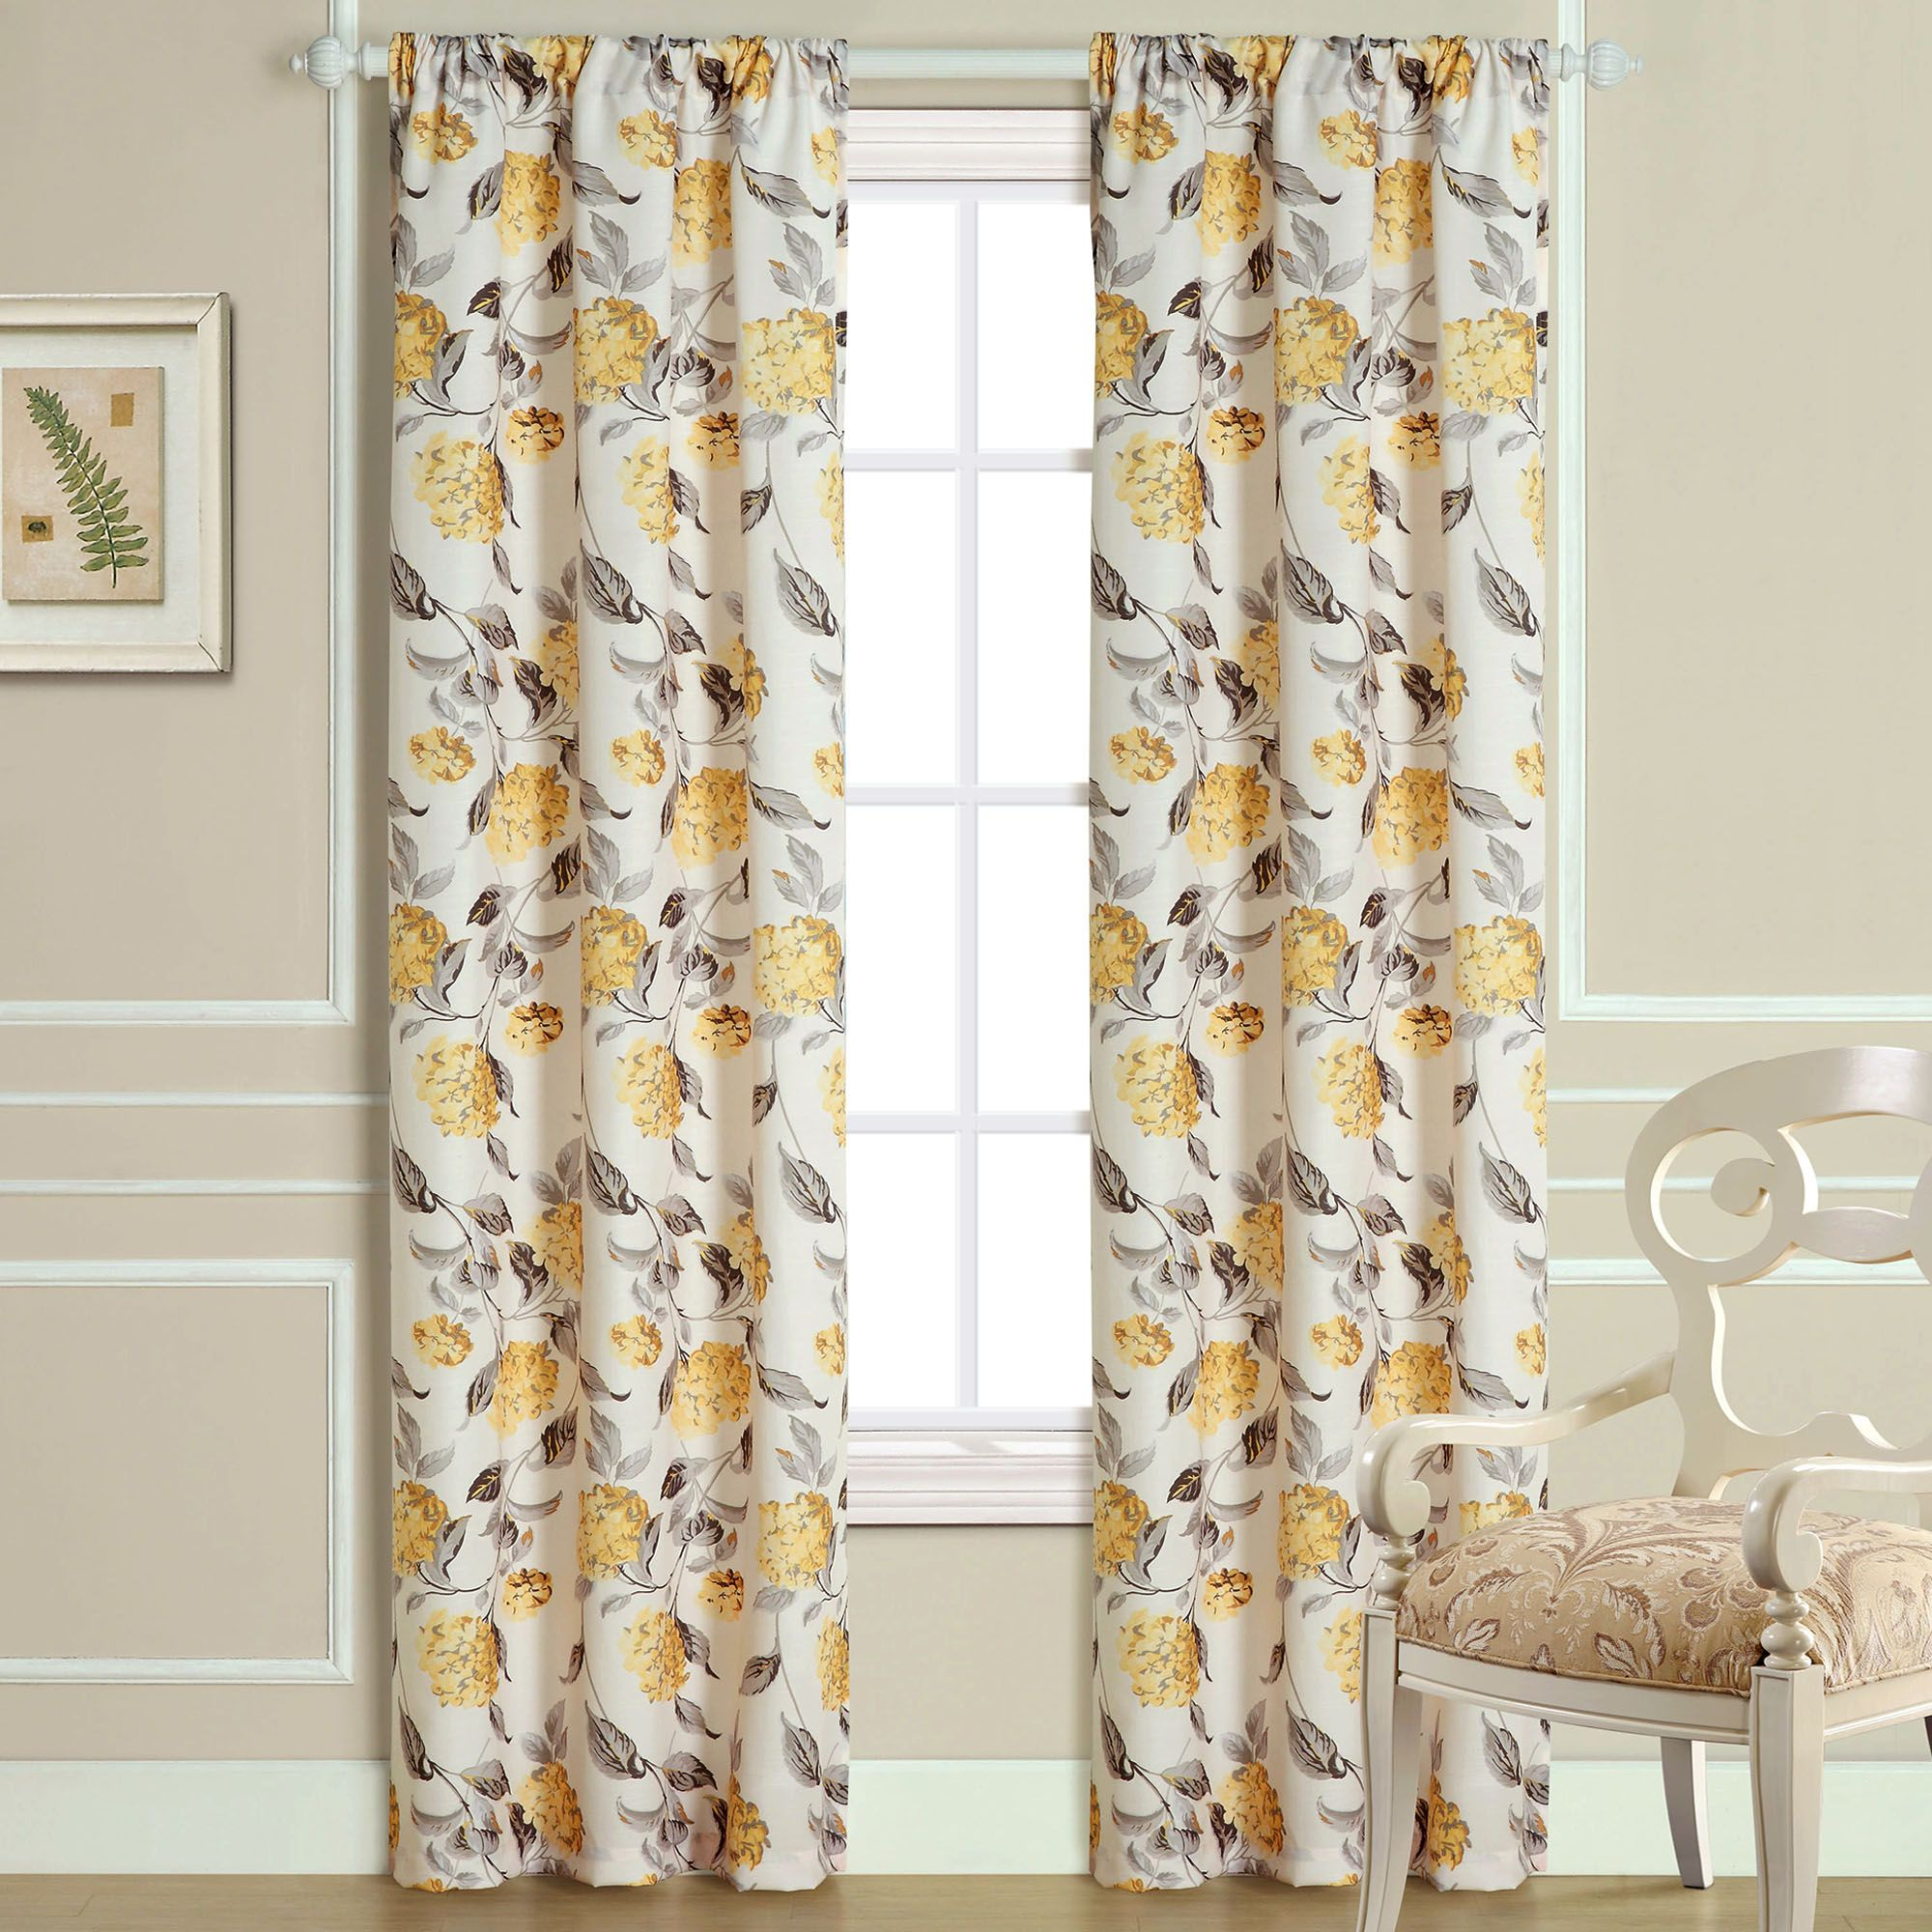 floral-curtains-7